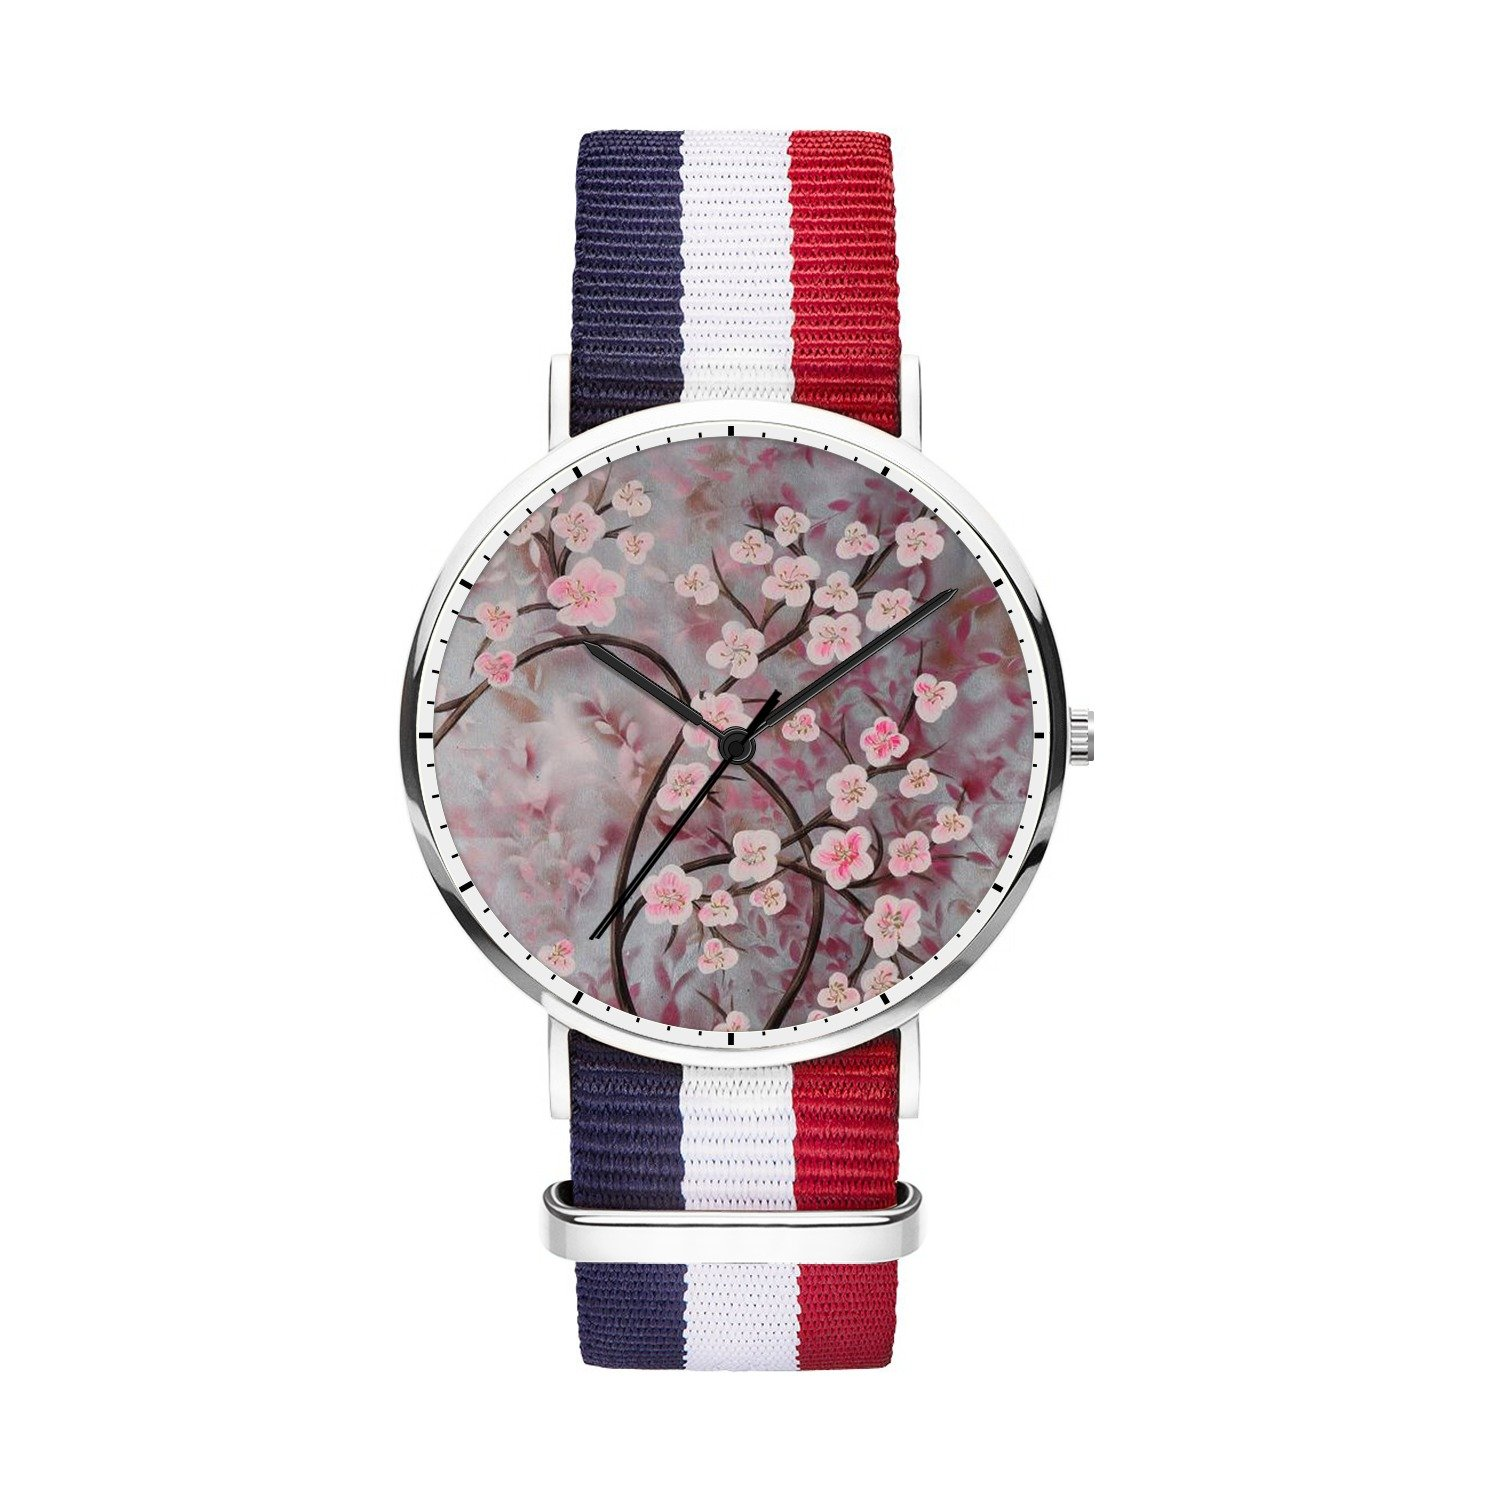 FELOOWSE Girls Watches, Women Watches, Sliver Slim Minimalist Imported Japanese Quartz PracticalWaterproof Unique Personalized Youth Fashion Design Cute Watches for Women.- Blossom Tree